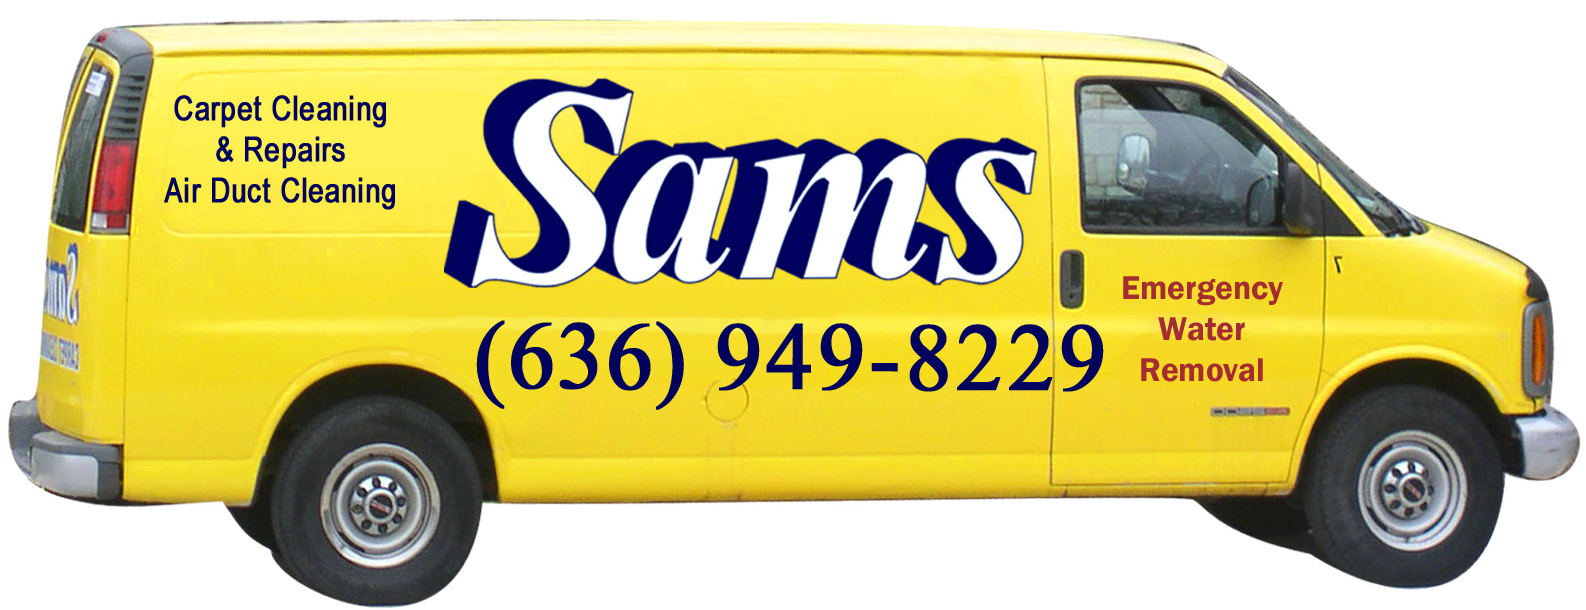 Carpet Cleaning Van Logo